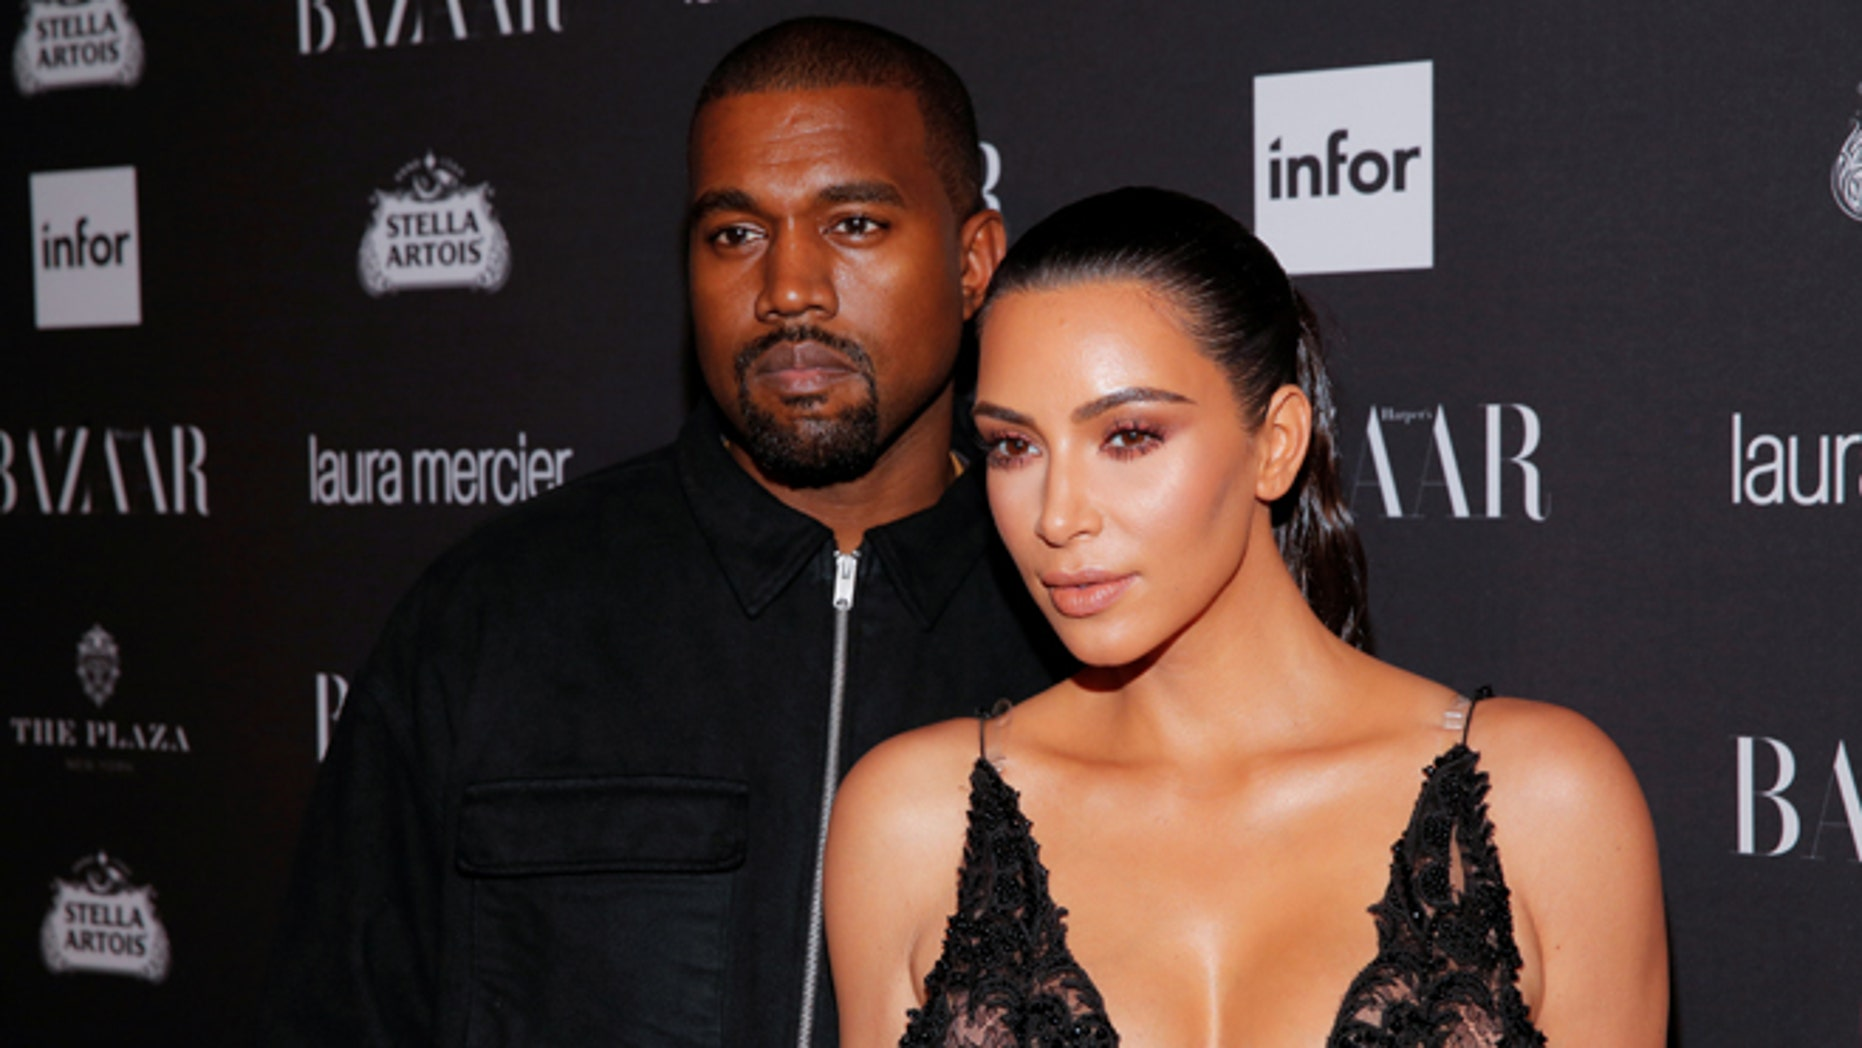 Kanye West spent Thanksgiving in the hospital with wife Kim Kardashian by his side.